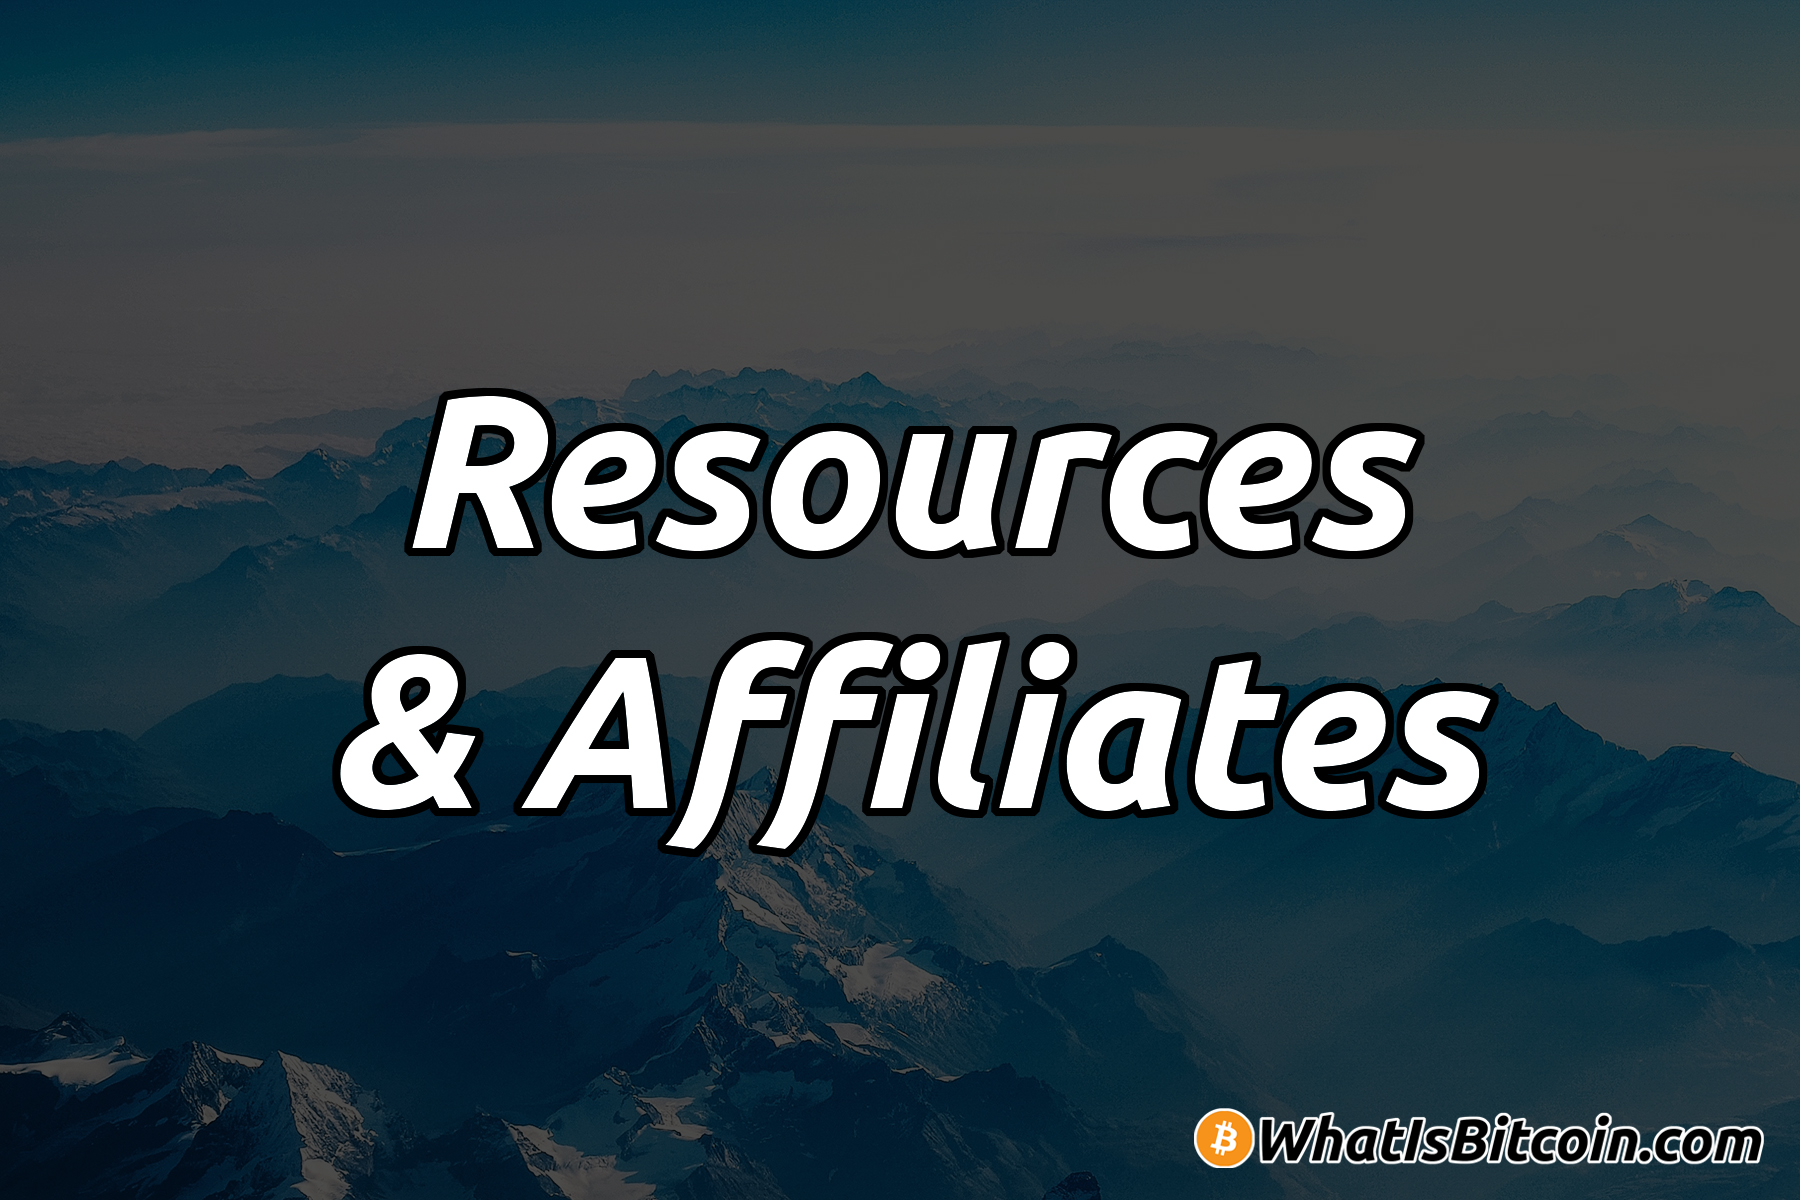 Resources & Affiliates - What Is Bitcoin?